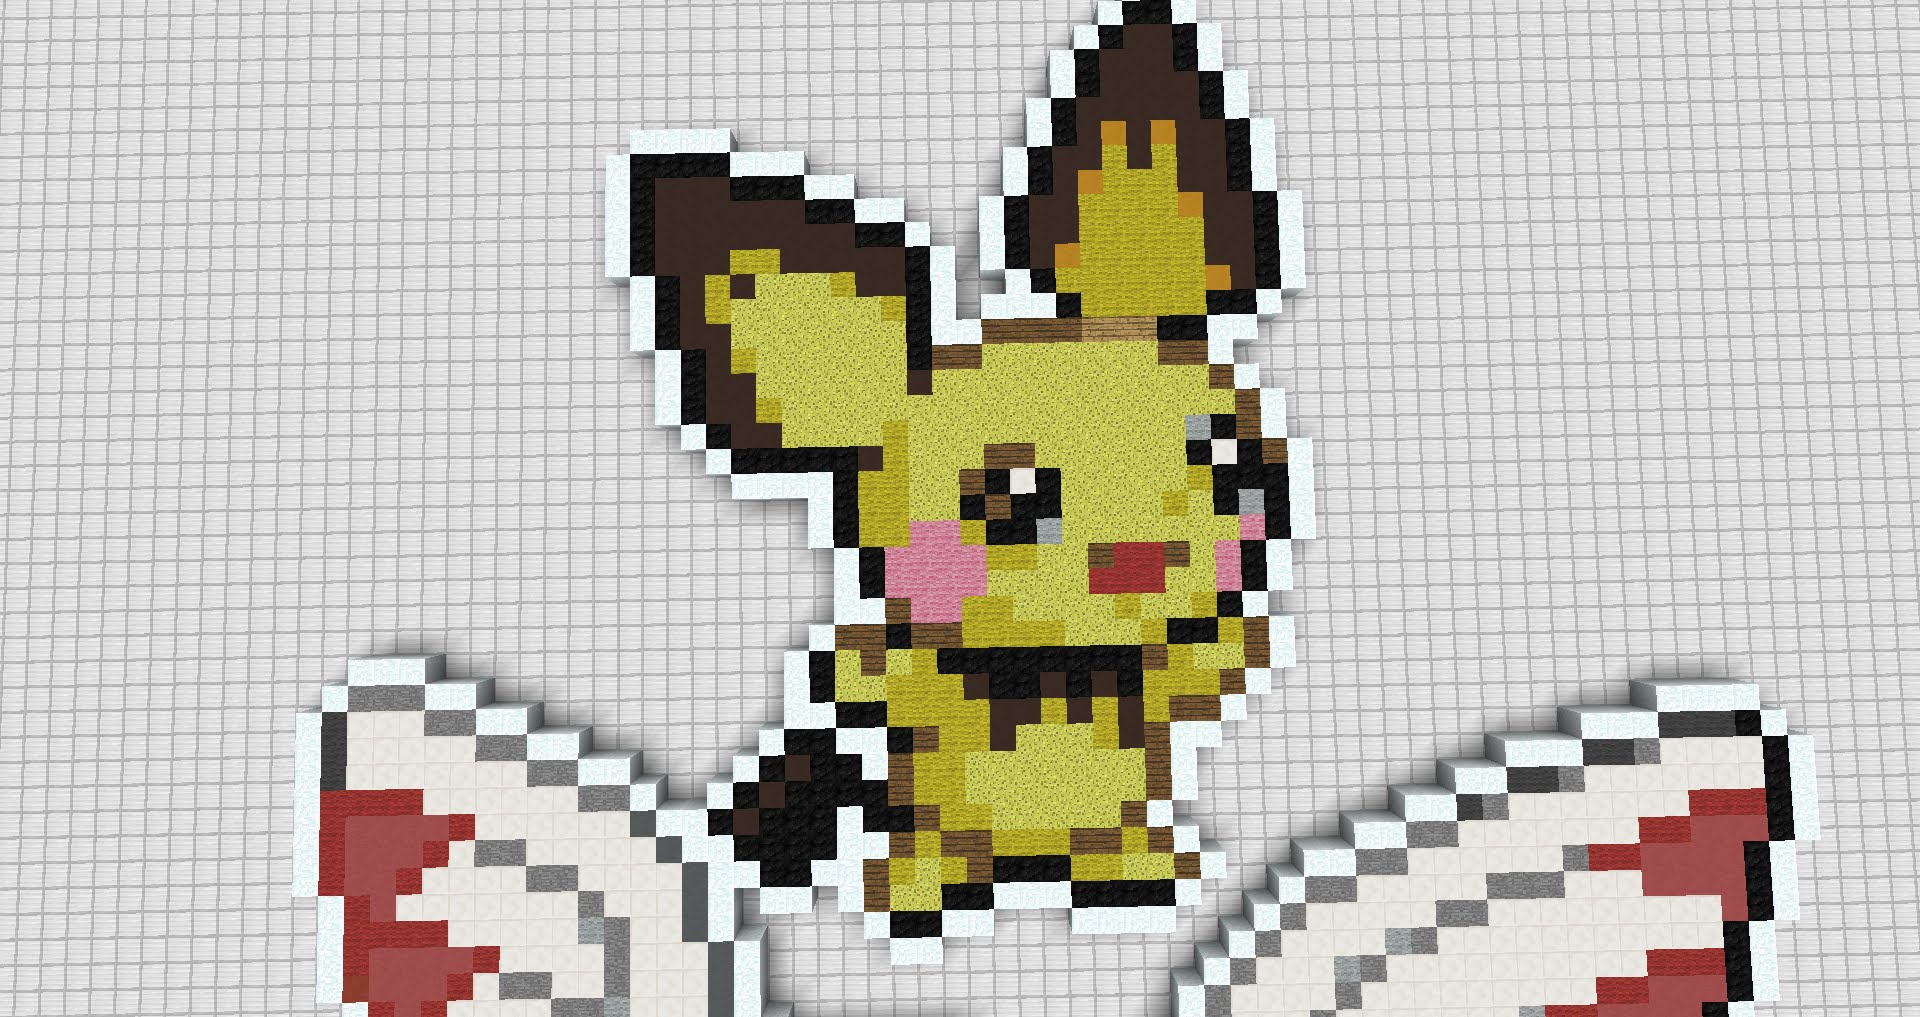 6 Minecraft Pixel Art Pokemon Pichu Youtube 6 Minecraft Pixel